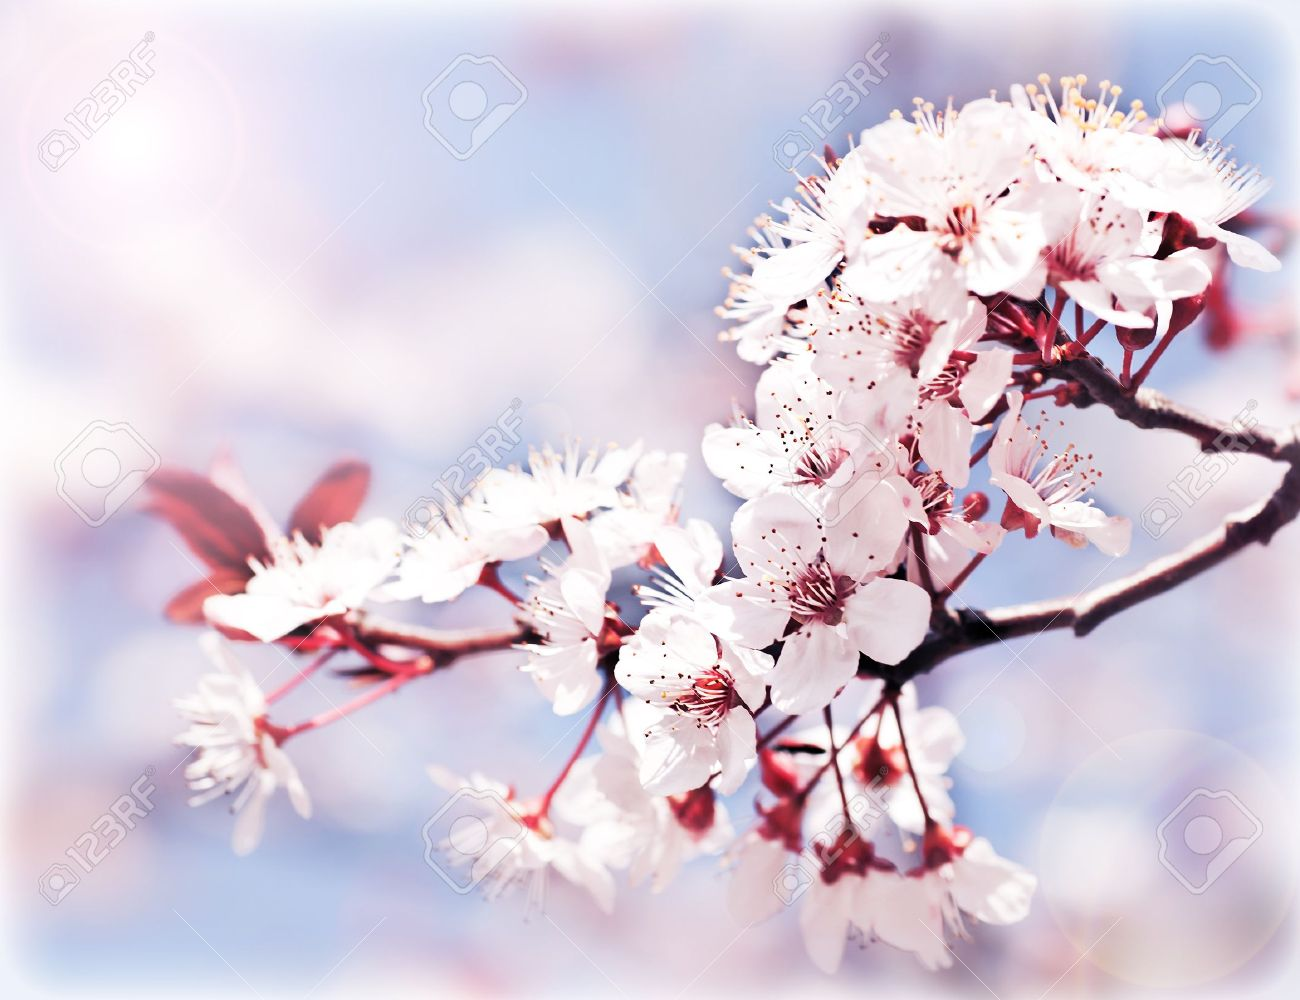 Fruit Tree Flowers Part - 40: Blooming Tree At Spring, Fresh Pink Flowers On The Branch Of Fruit Tree,  Plant